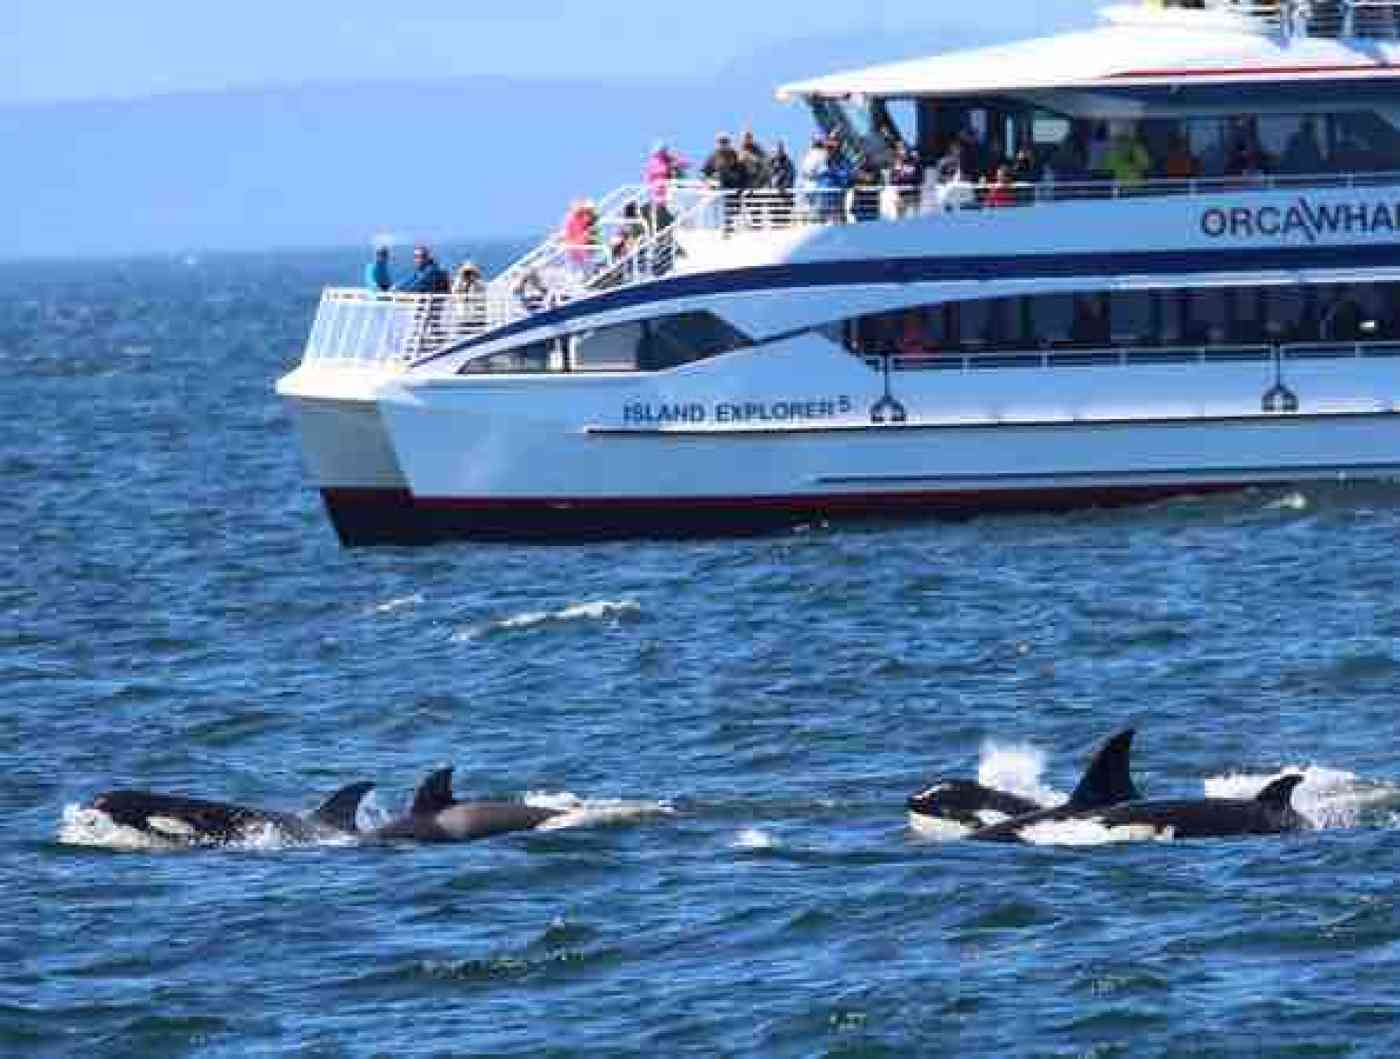 Anacortes Whale Watching Island Explorer 5